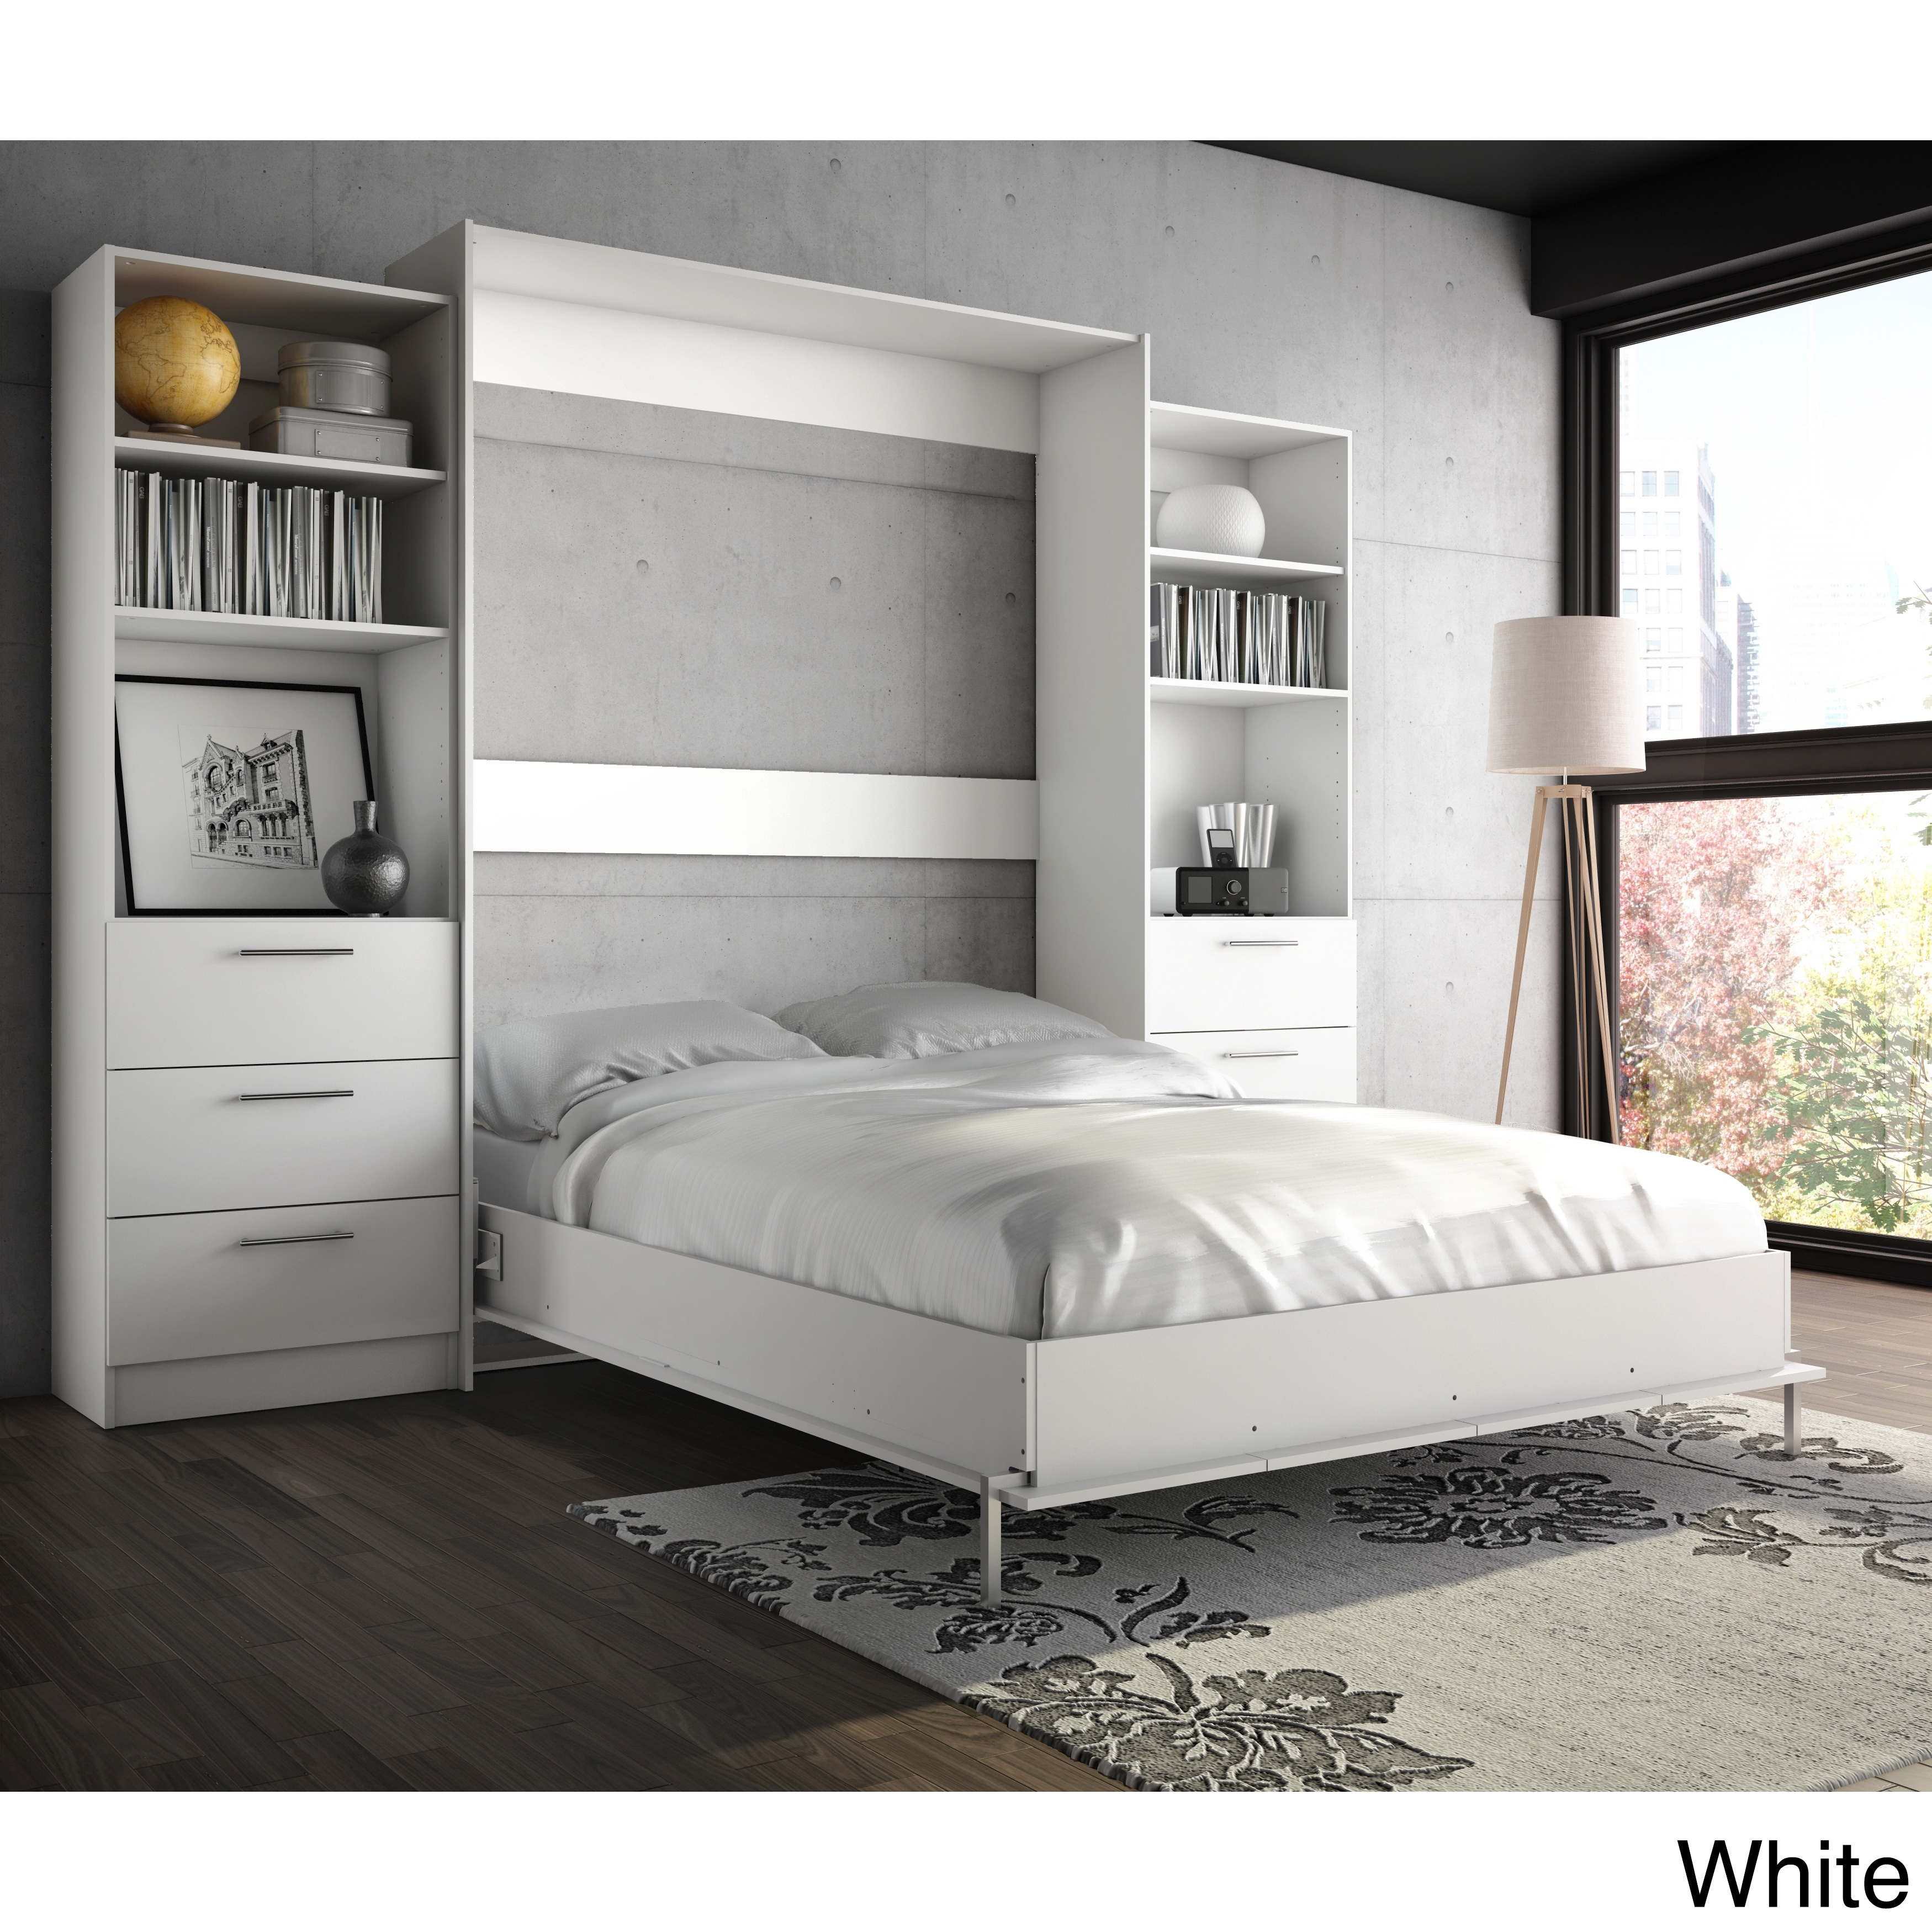 Stellar Home Furniture Wall Bed Avie Home